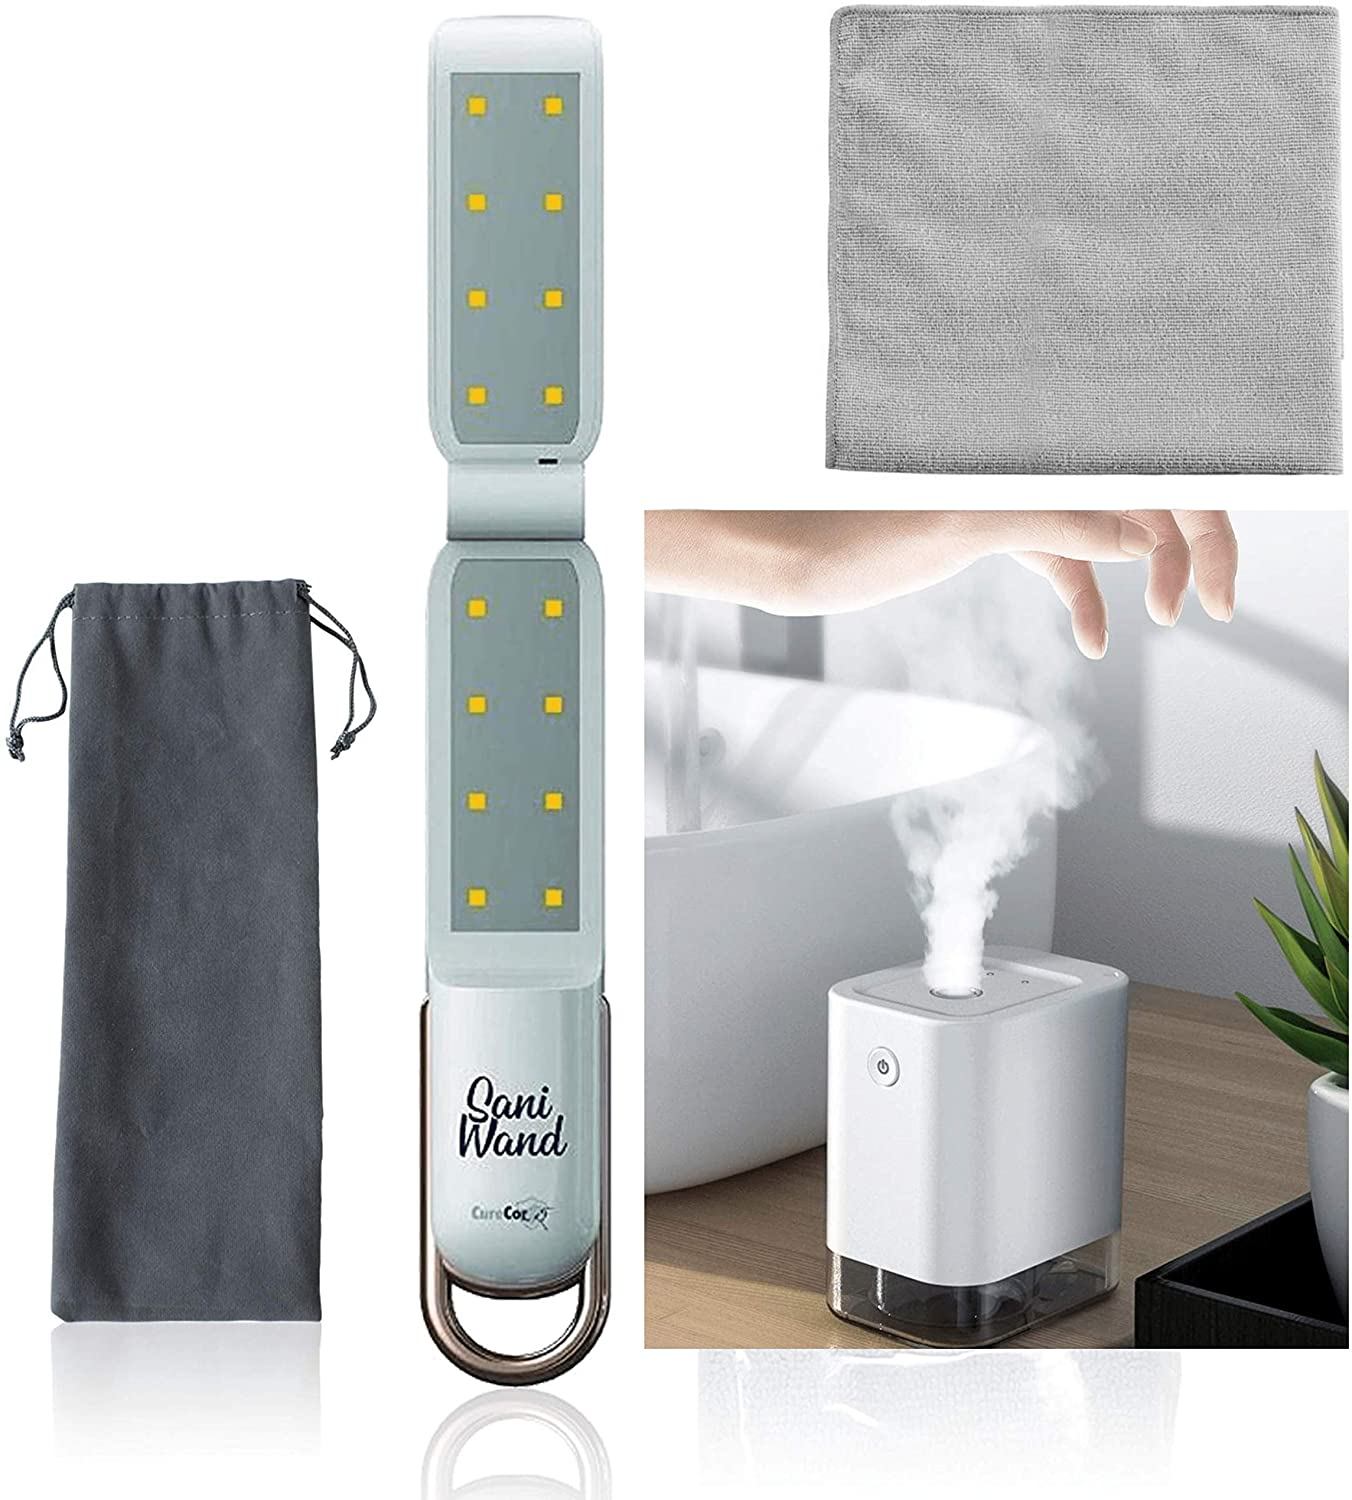 CureCorr Sanitizing Bundle/SaniWand Portable UV-C Wand, Ultraviolet Wand, Bundle With SaniTowel (Silver Infused Cleaning Towel), SaniMist (Automatic Alcohol and Sanitizer Dispenser) and DrawString Bag